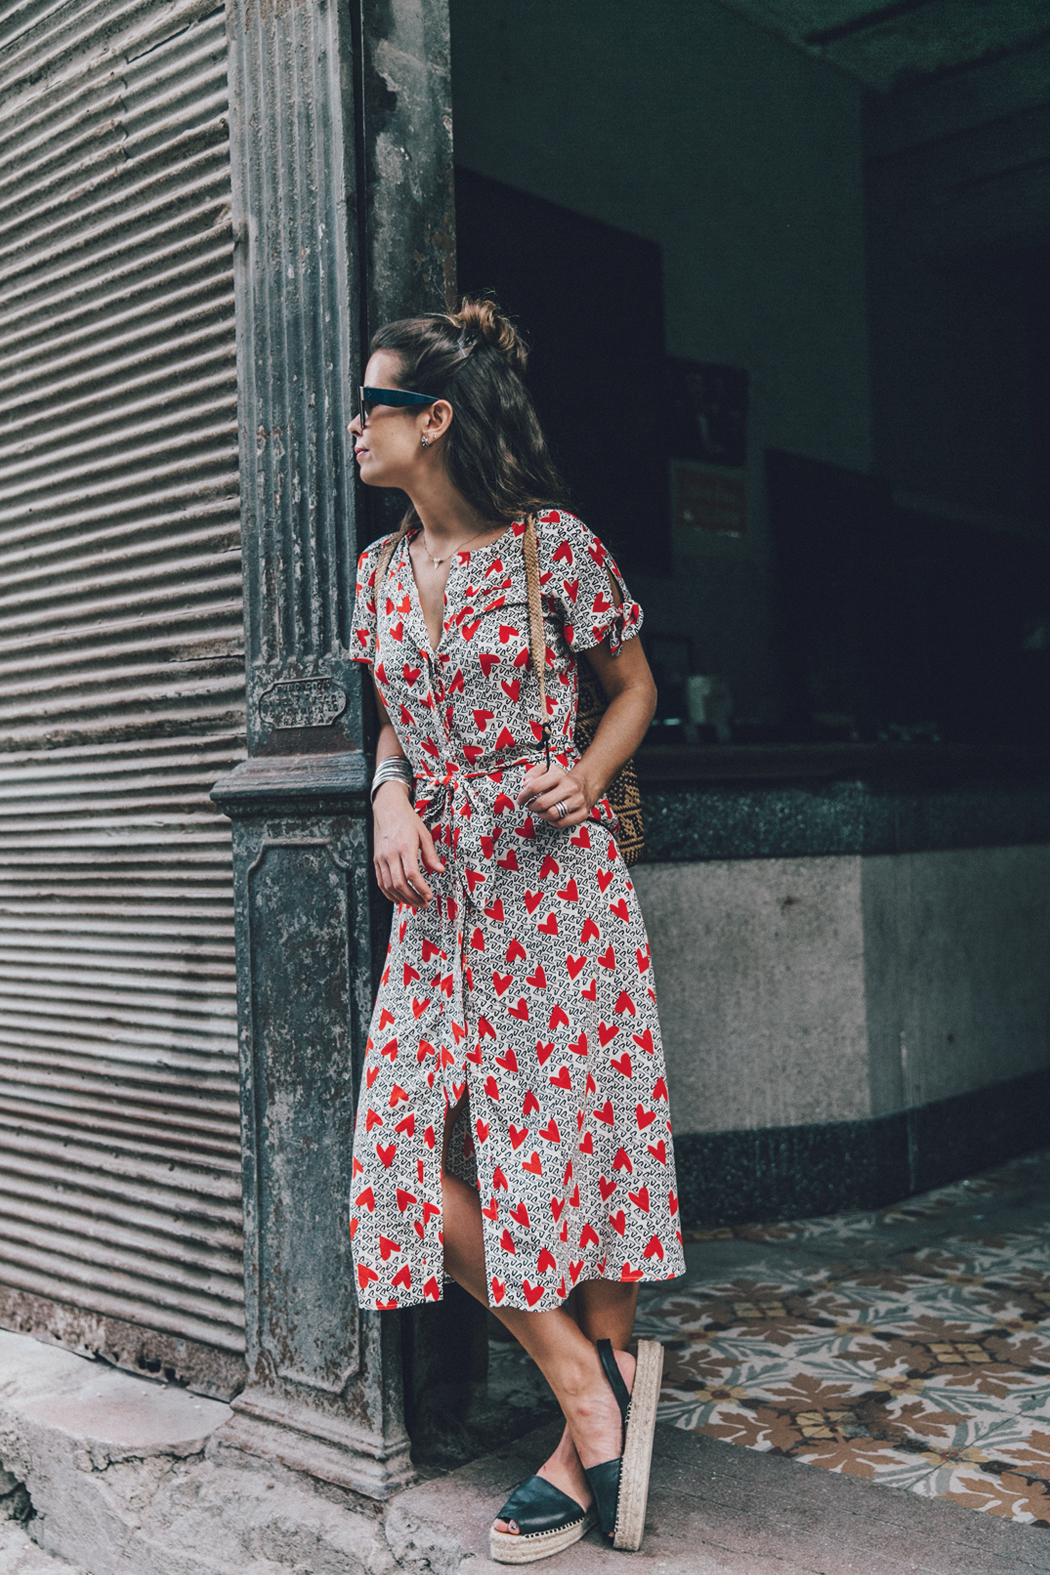 Cuba-La_Habana_Vieja-Hearts_Dress-Styled_By_Me-Aloha_Espadrilles-Outfit-Street_Style-Dress-Backpack-64